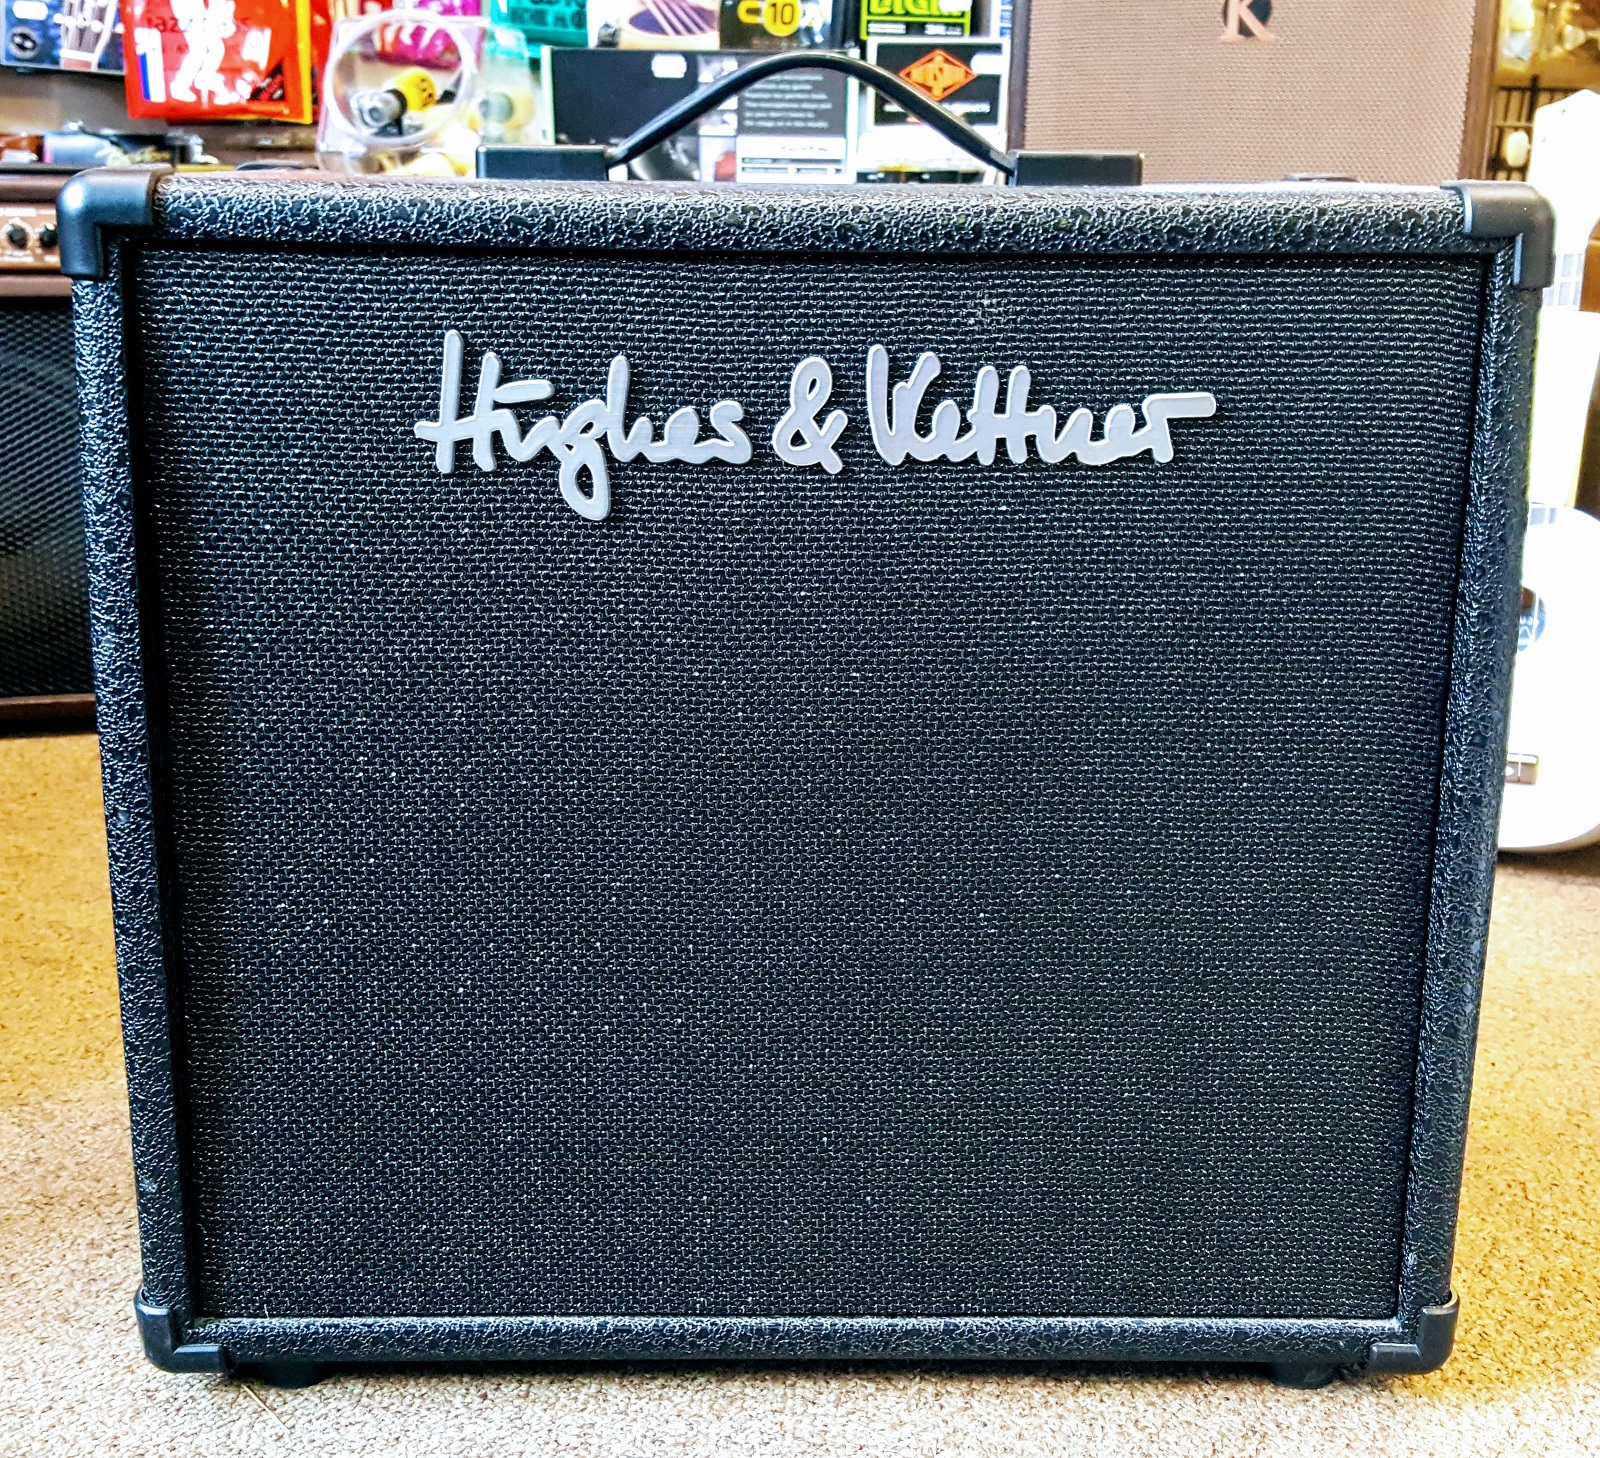 Hughes and Kettner Edition Blue 60R - Pre-Owned